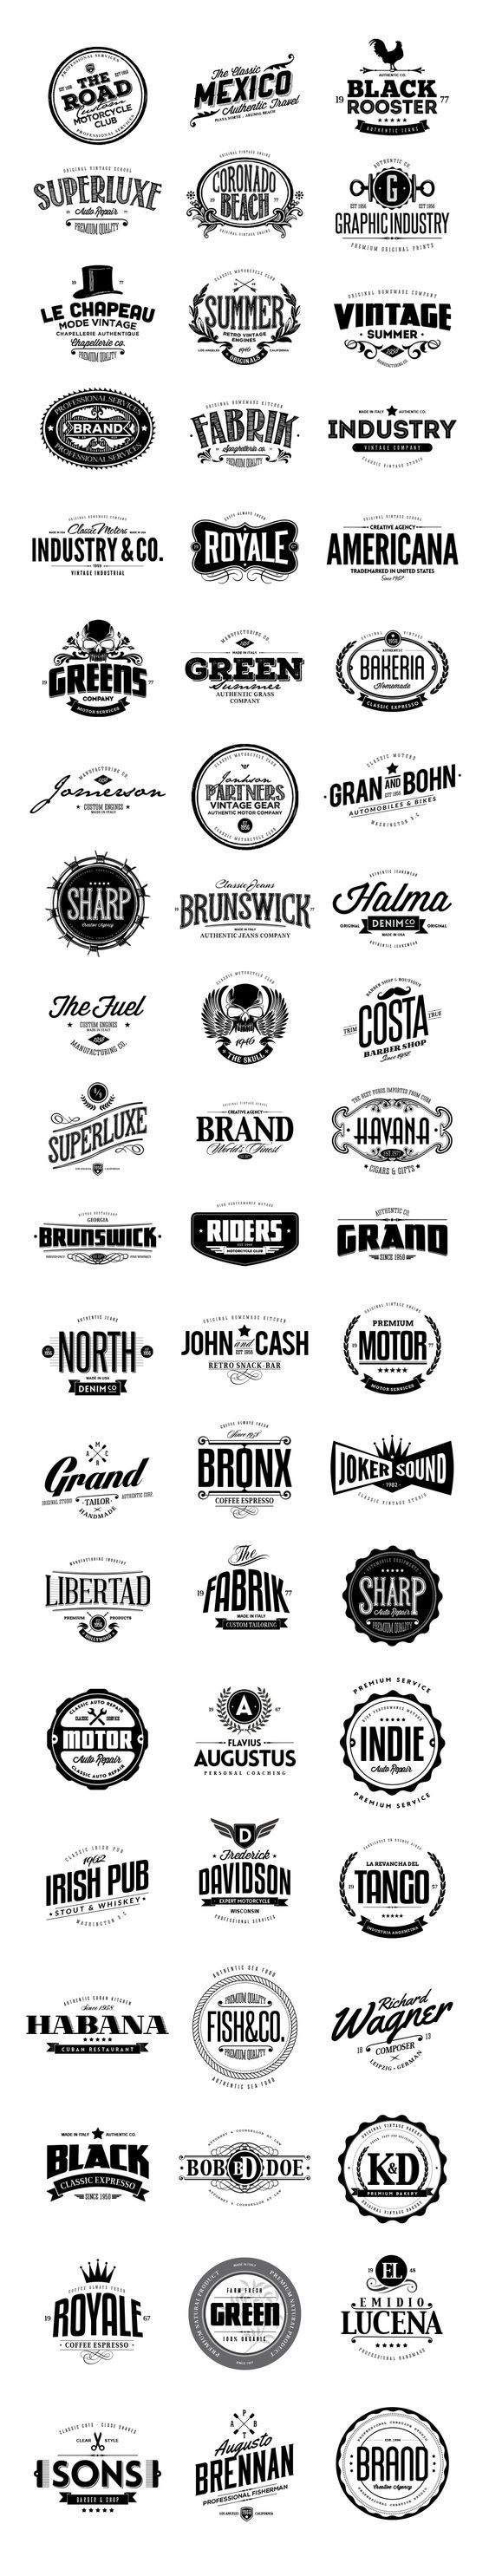 60 Premium Badges & Logos bundle, perfect for poster, sticker, packaging product design, t-shirt design, corporative identity and much more! Each Badge & Logo have been created with care: